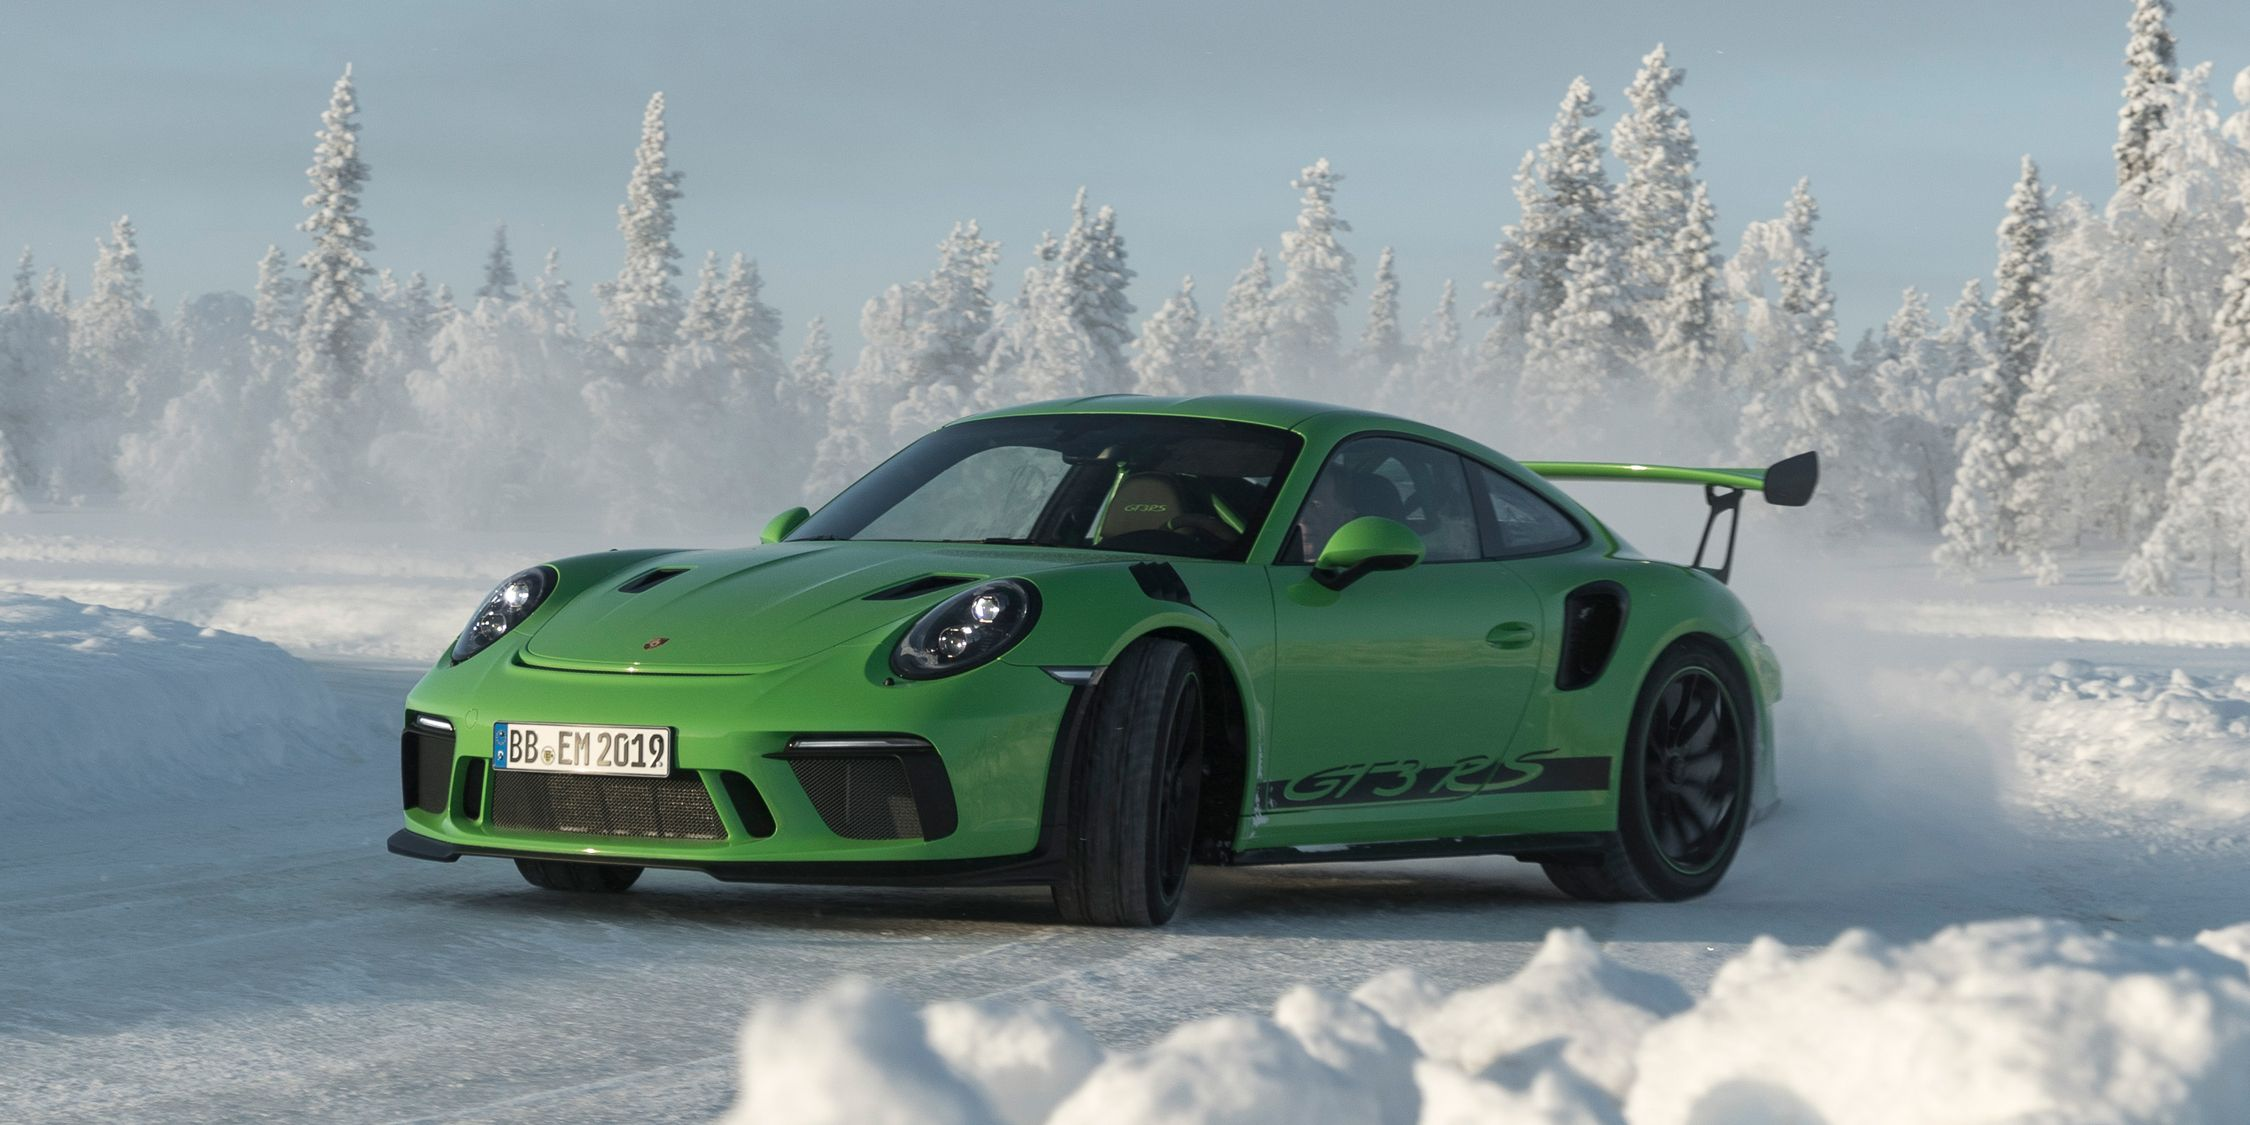 2019 Porsche 911 Gt3 Rs Debuts Looks Bad Ass Because It Is News